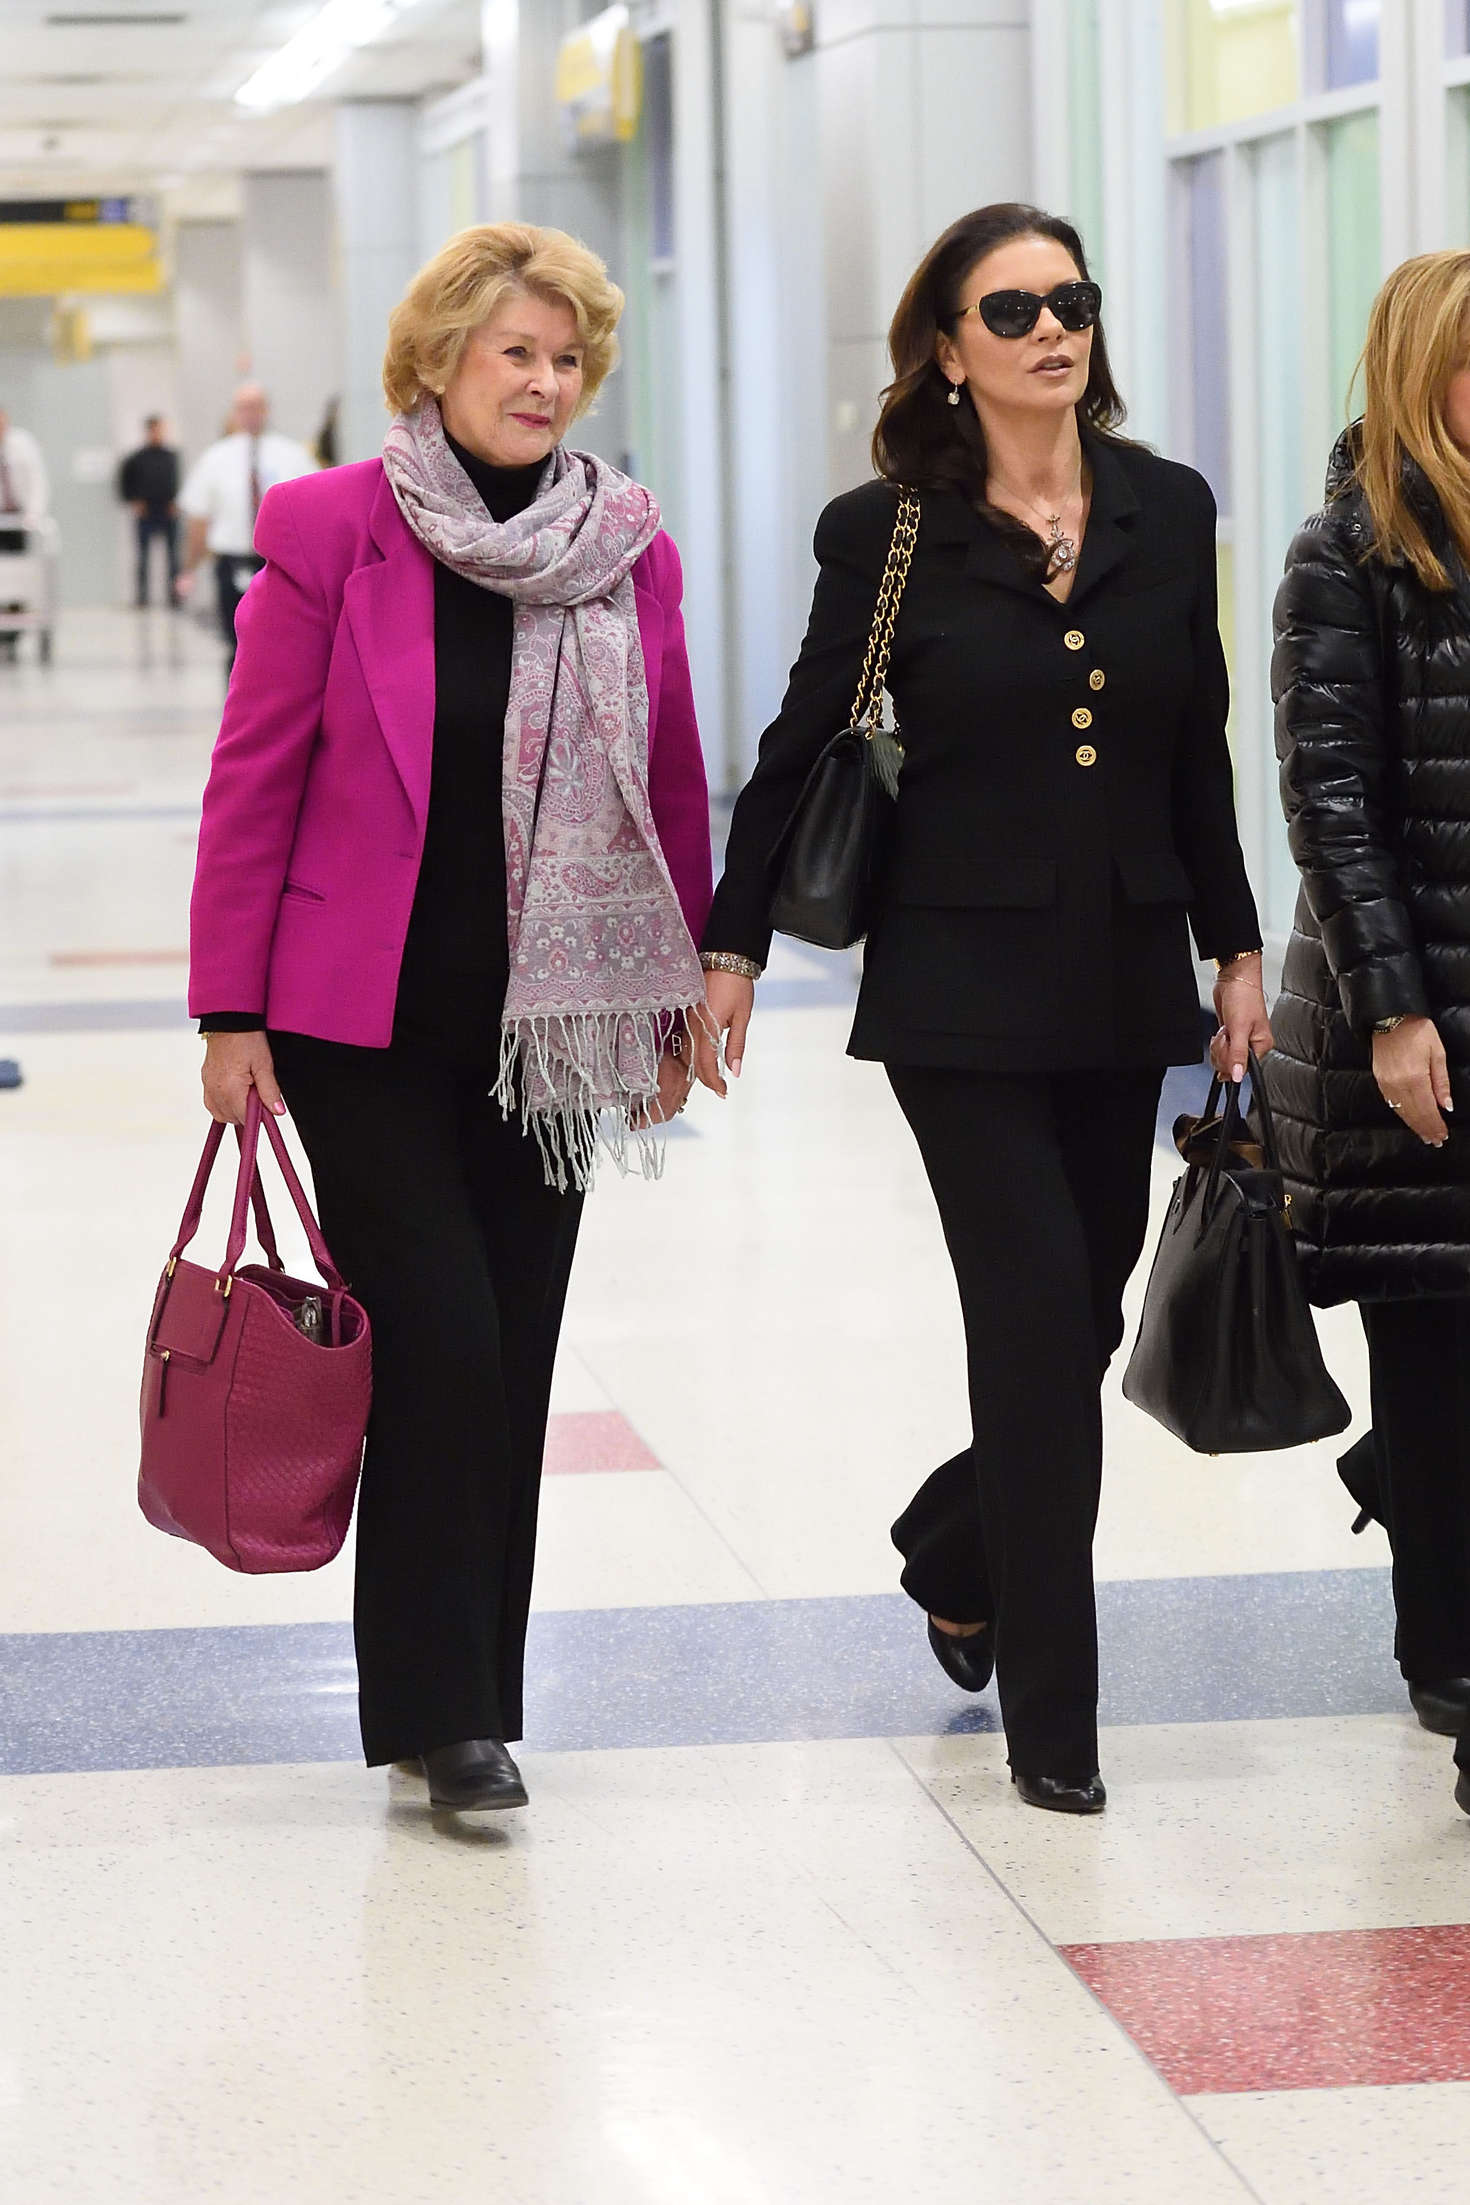 Catherine Zeta Jones Arrives at JFK Airport in New York